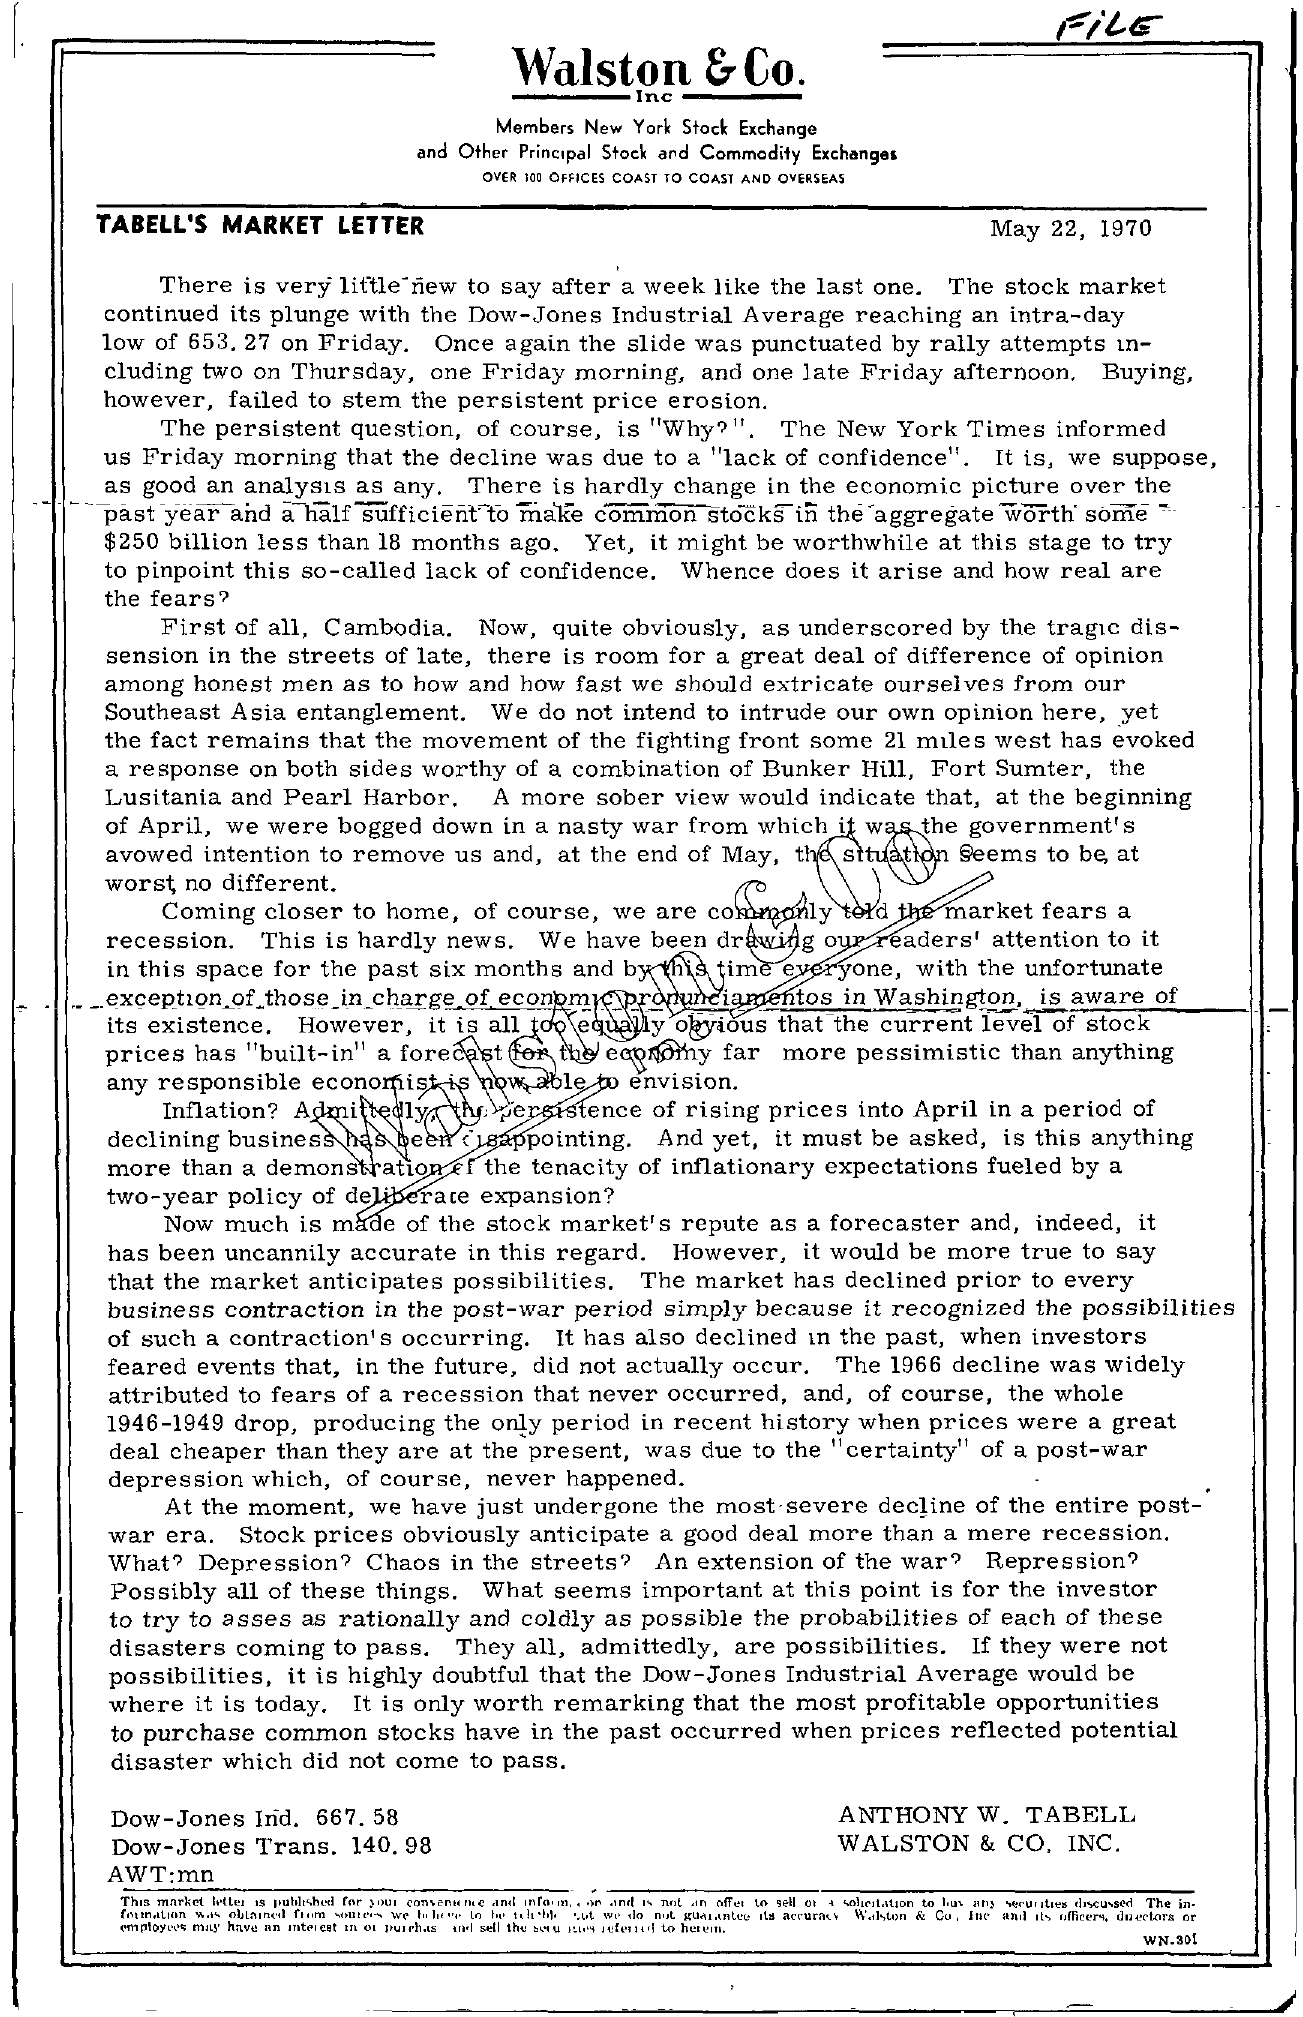 Tabell's Market Letter - May 22, 1970